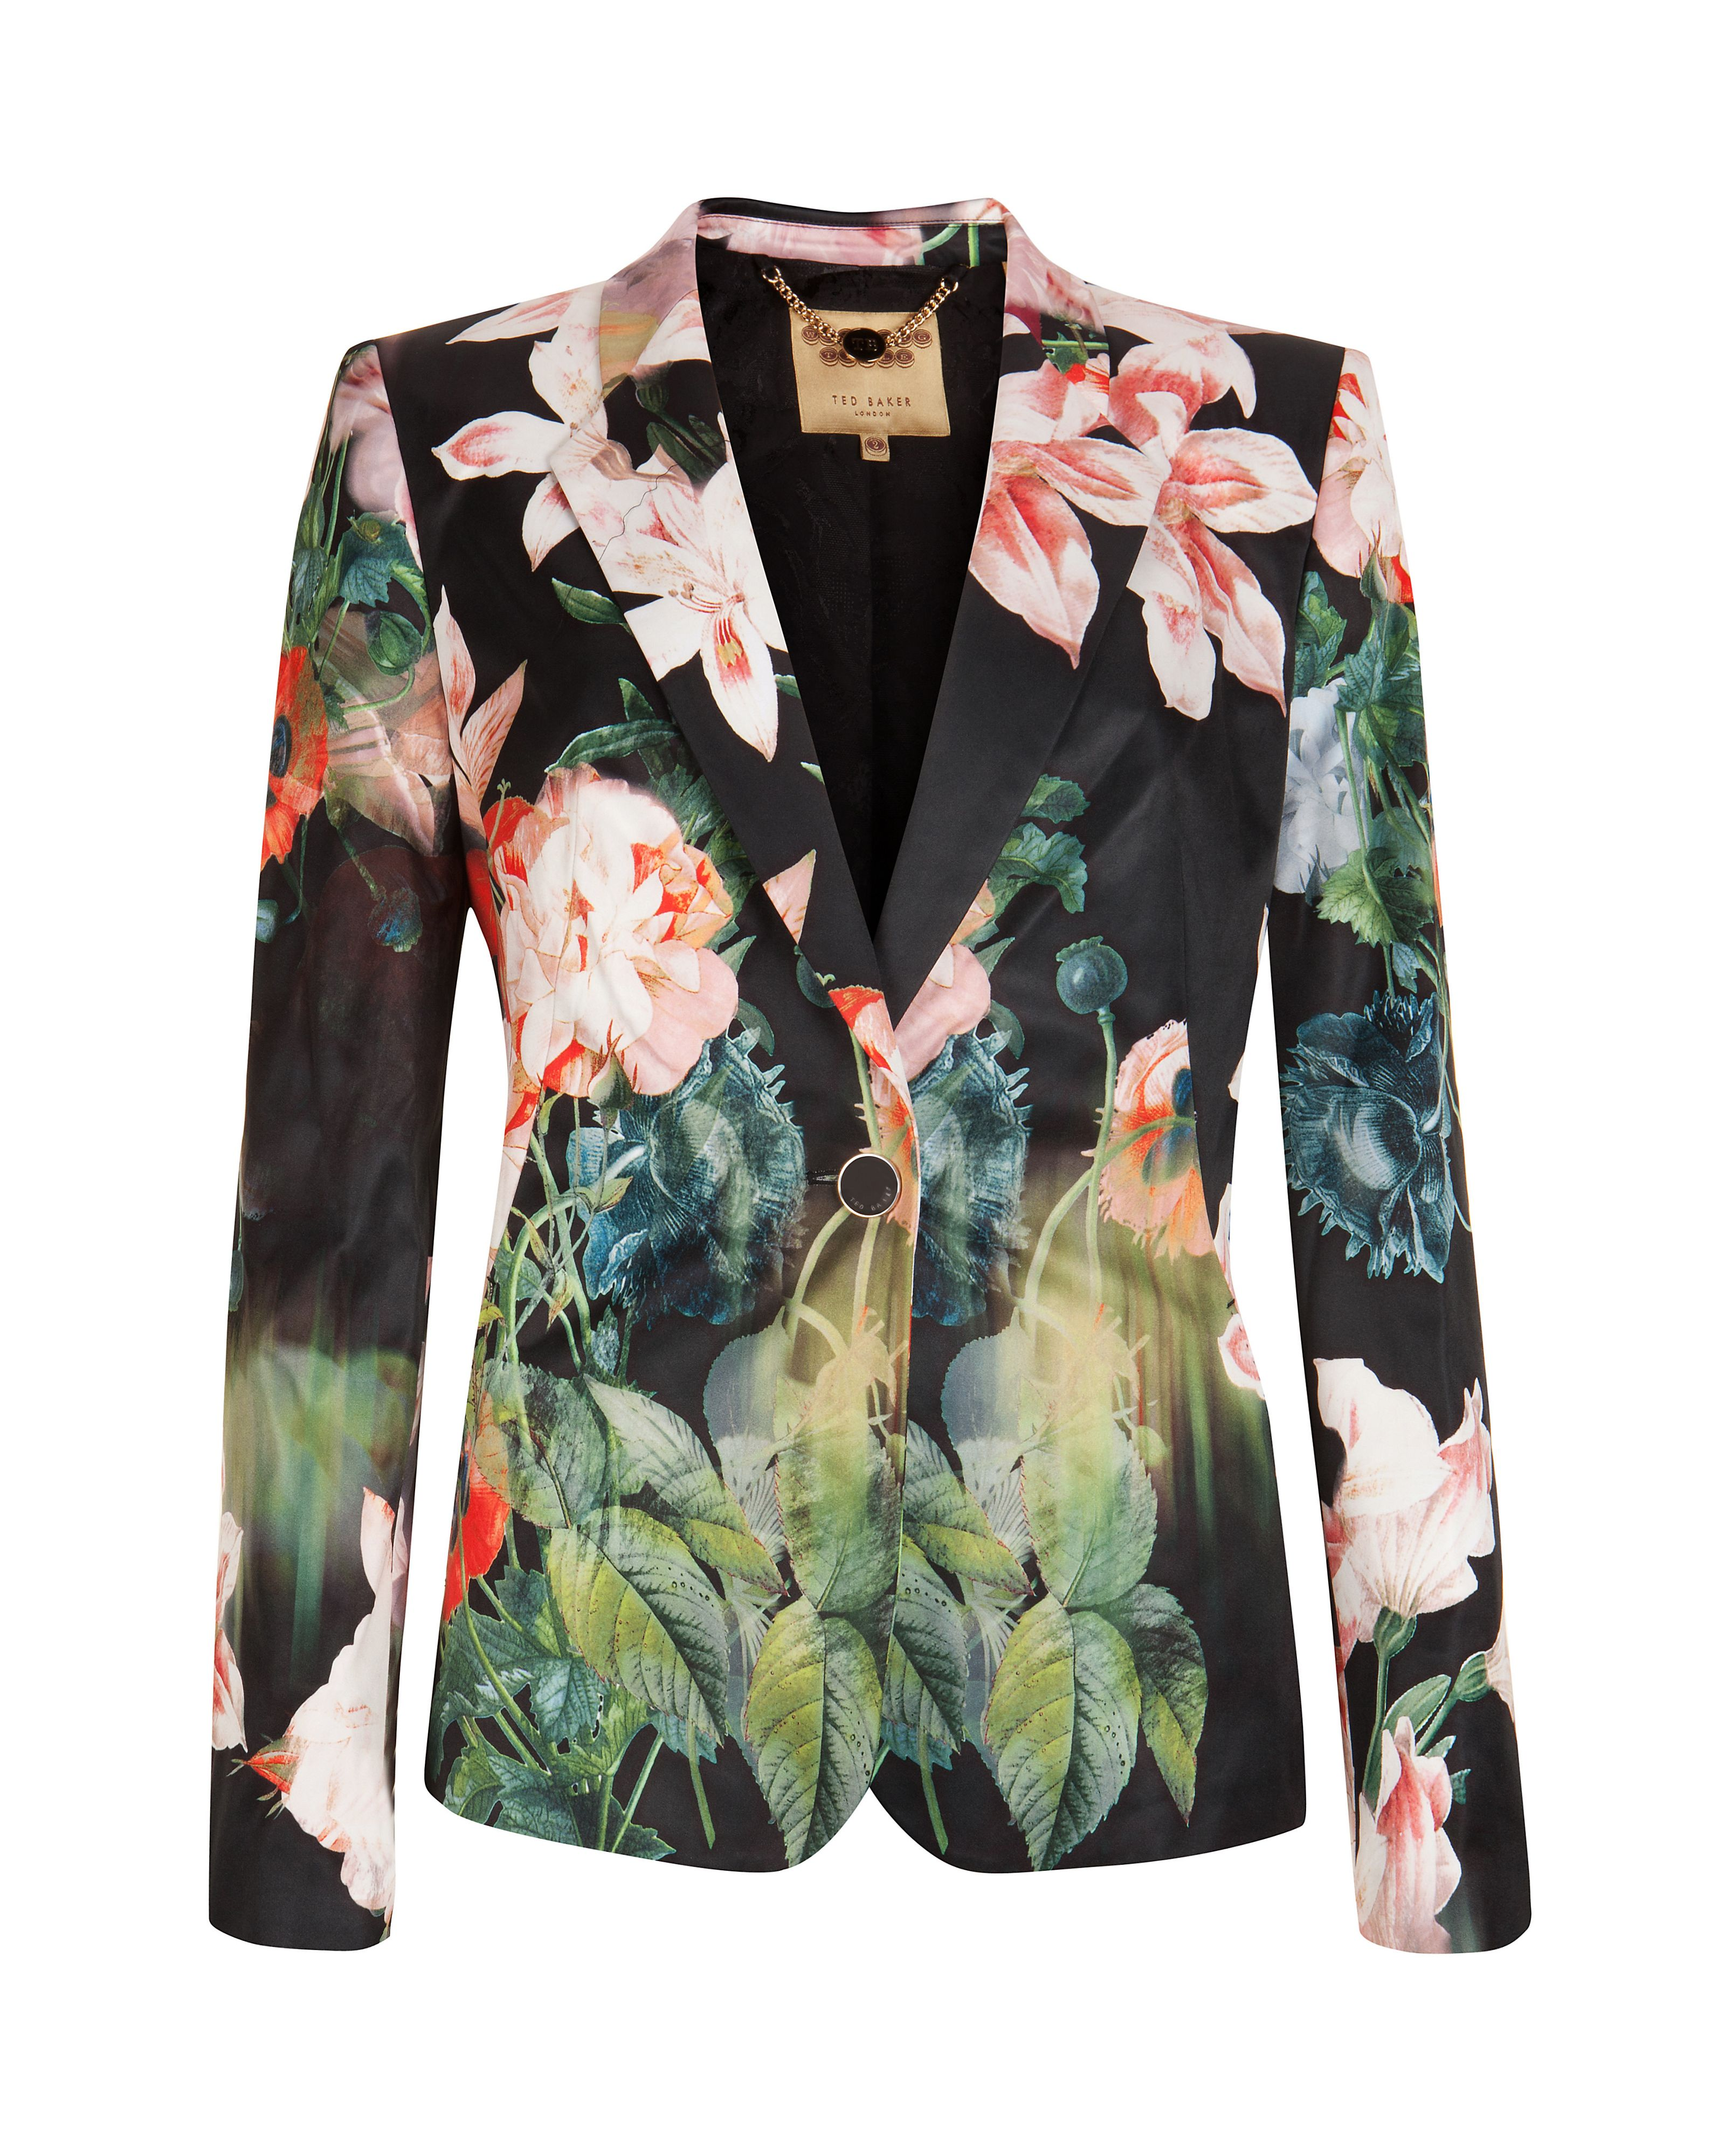 Ohiyo opulent bloom suit jacket